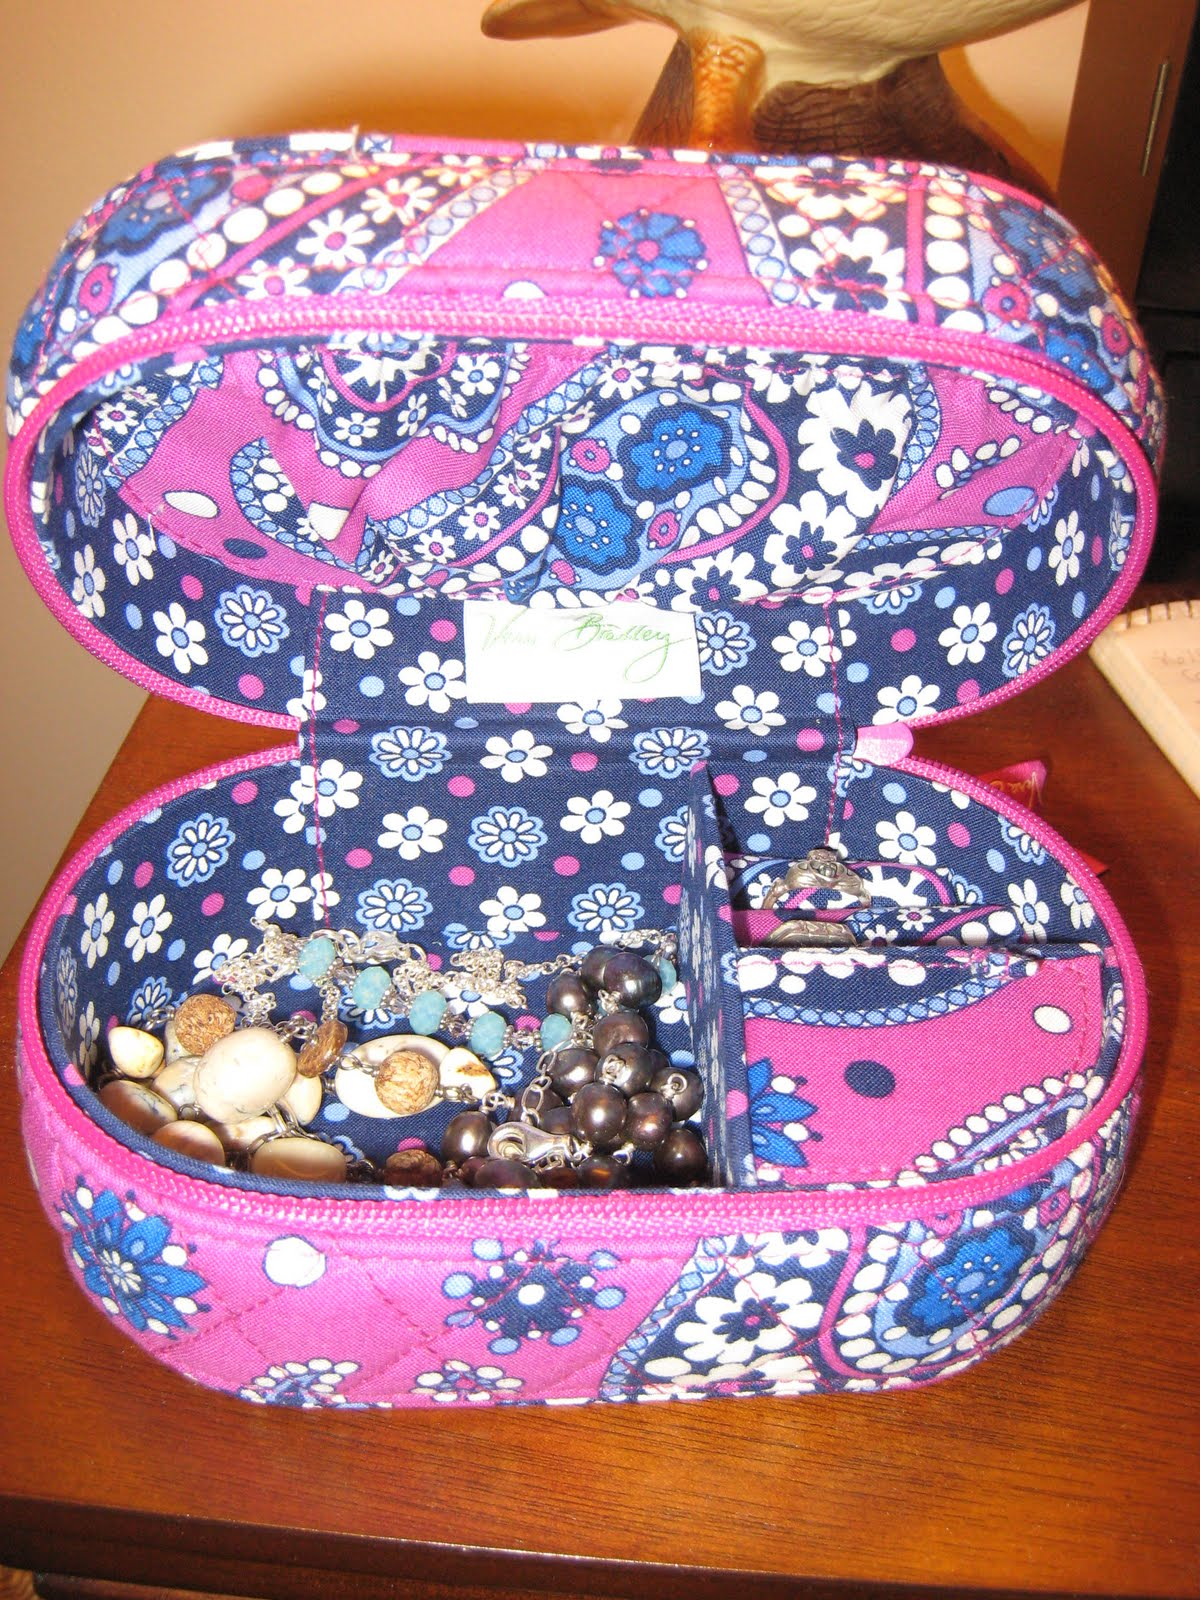 Vera Bradley's trademark style is fashionable quilted cotton bags in all sizes in shapes. Perfect for any professional or casual look, Vera Bradley purses come in crossbody, satchel, tote bag, backpack and shoulder bag styles. Vera Bradley diaper bags provide a .